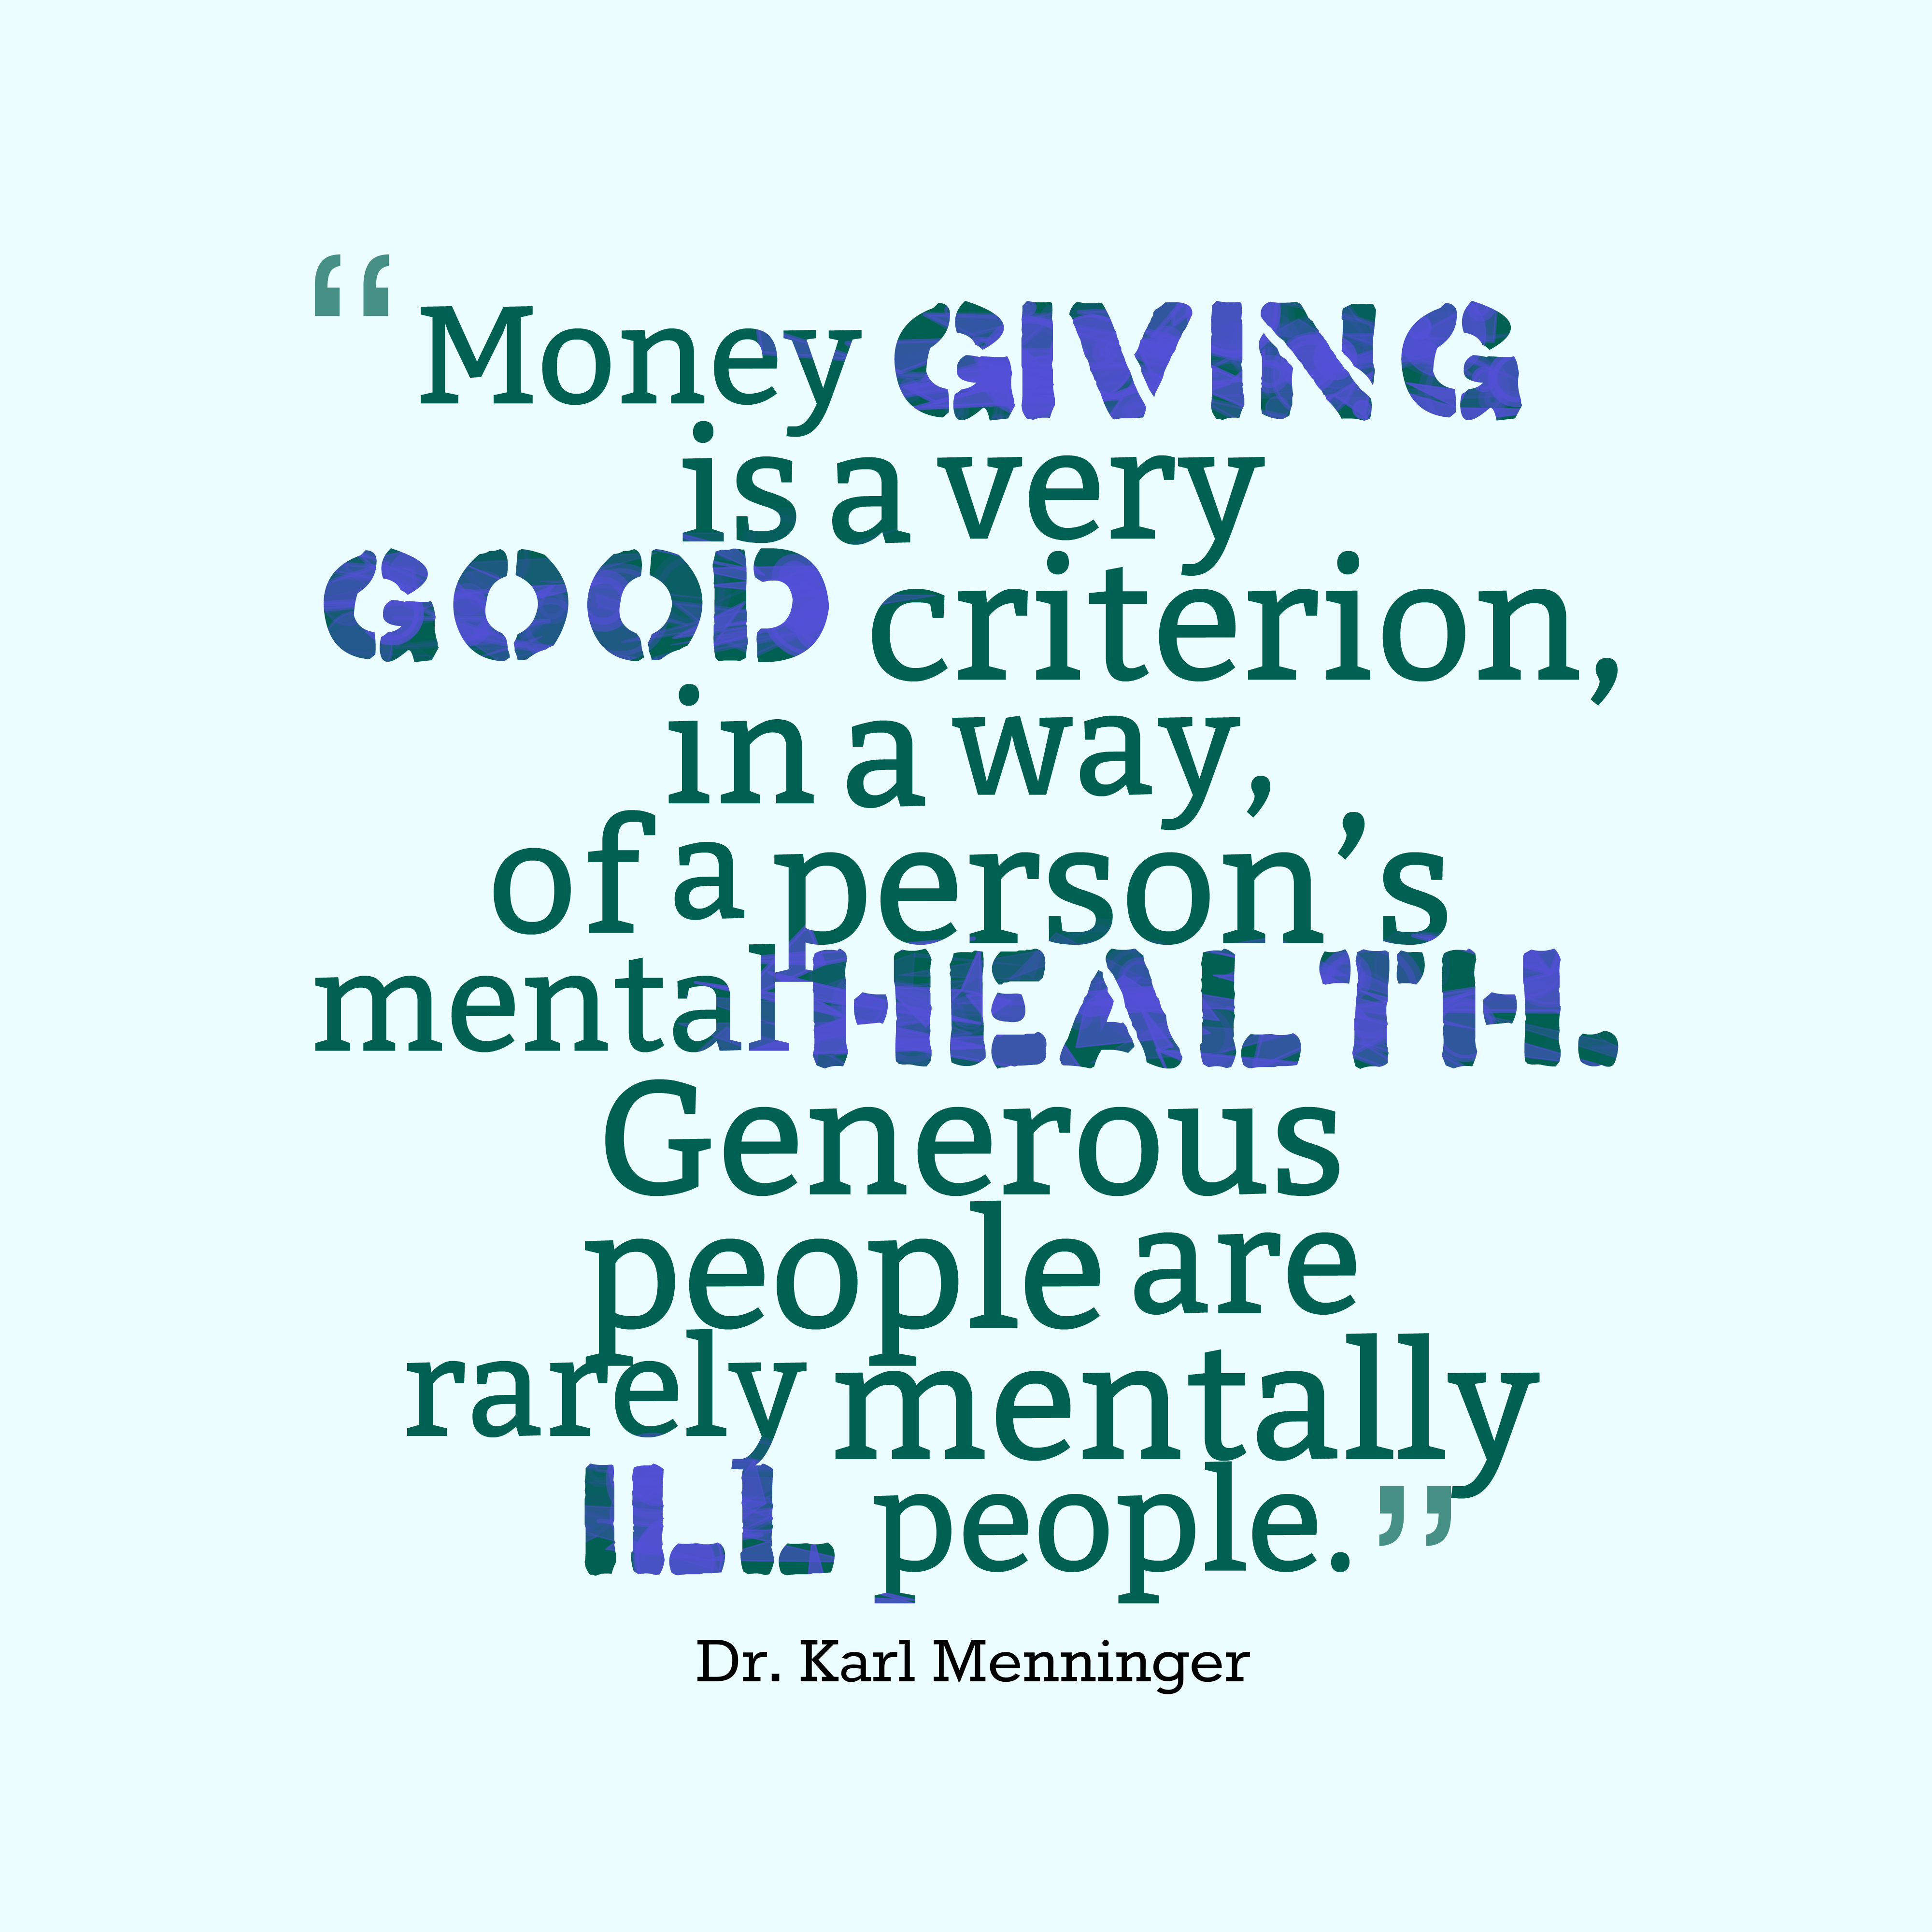 Quotes image of Money giving is a very good criterion, in a way, of a person's mental health. Generous people are rarely mentally ill people.